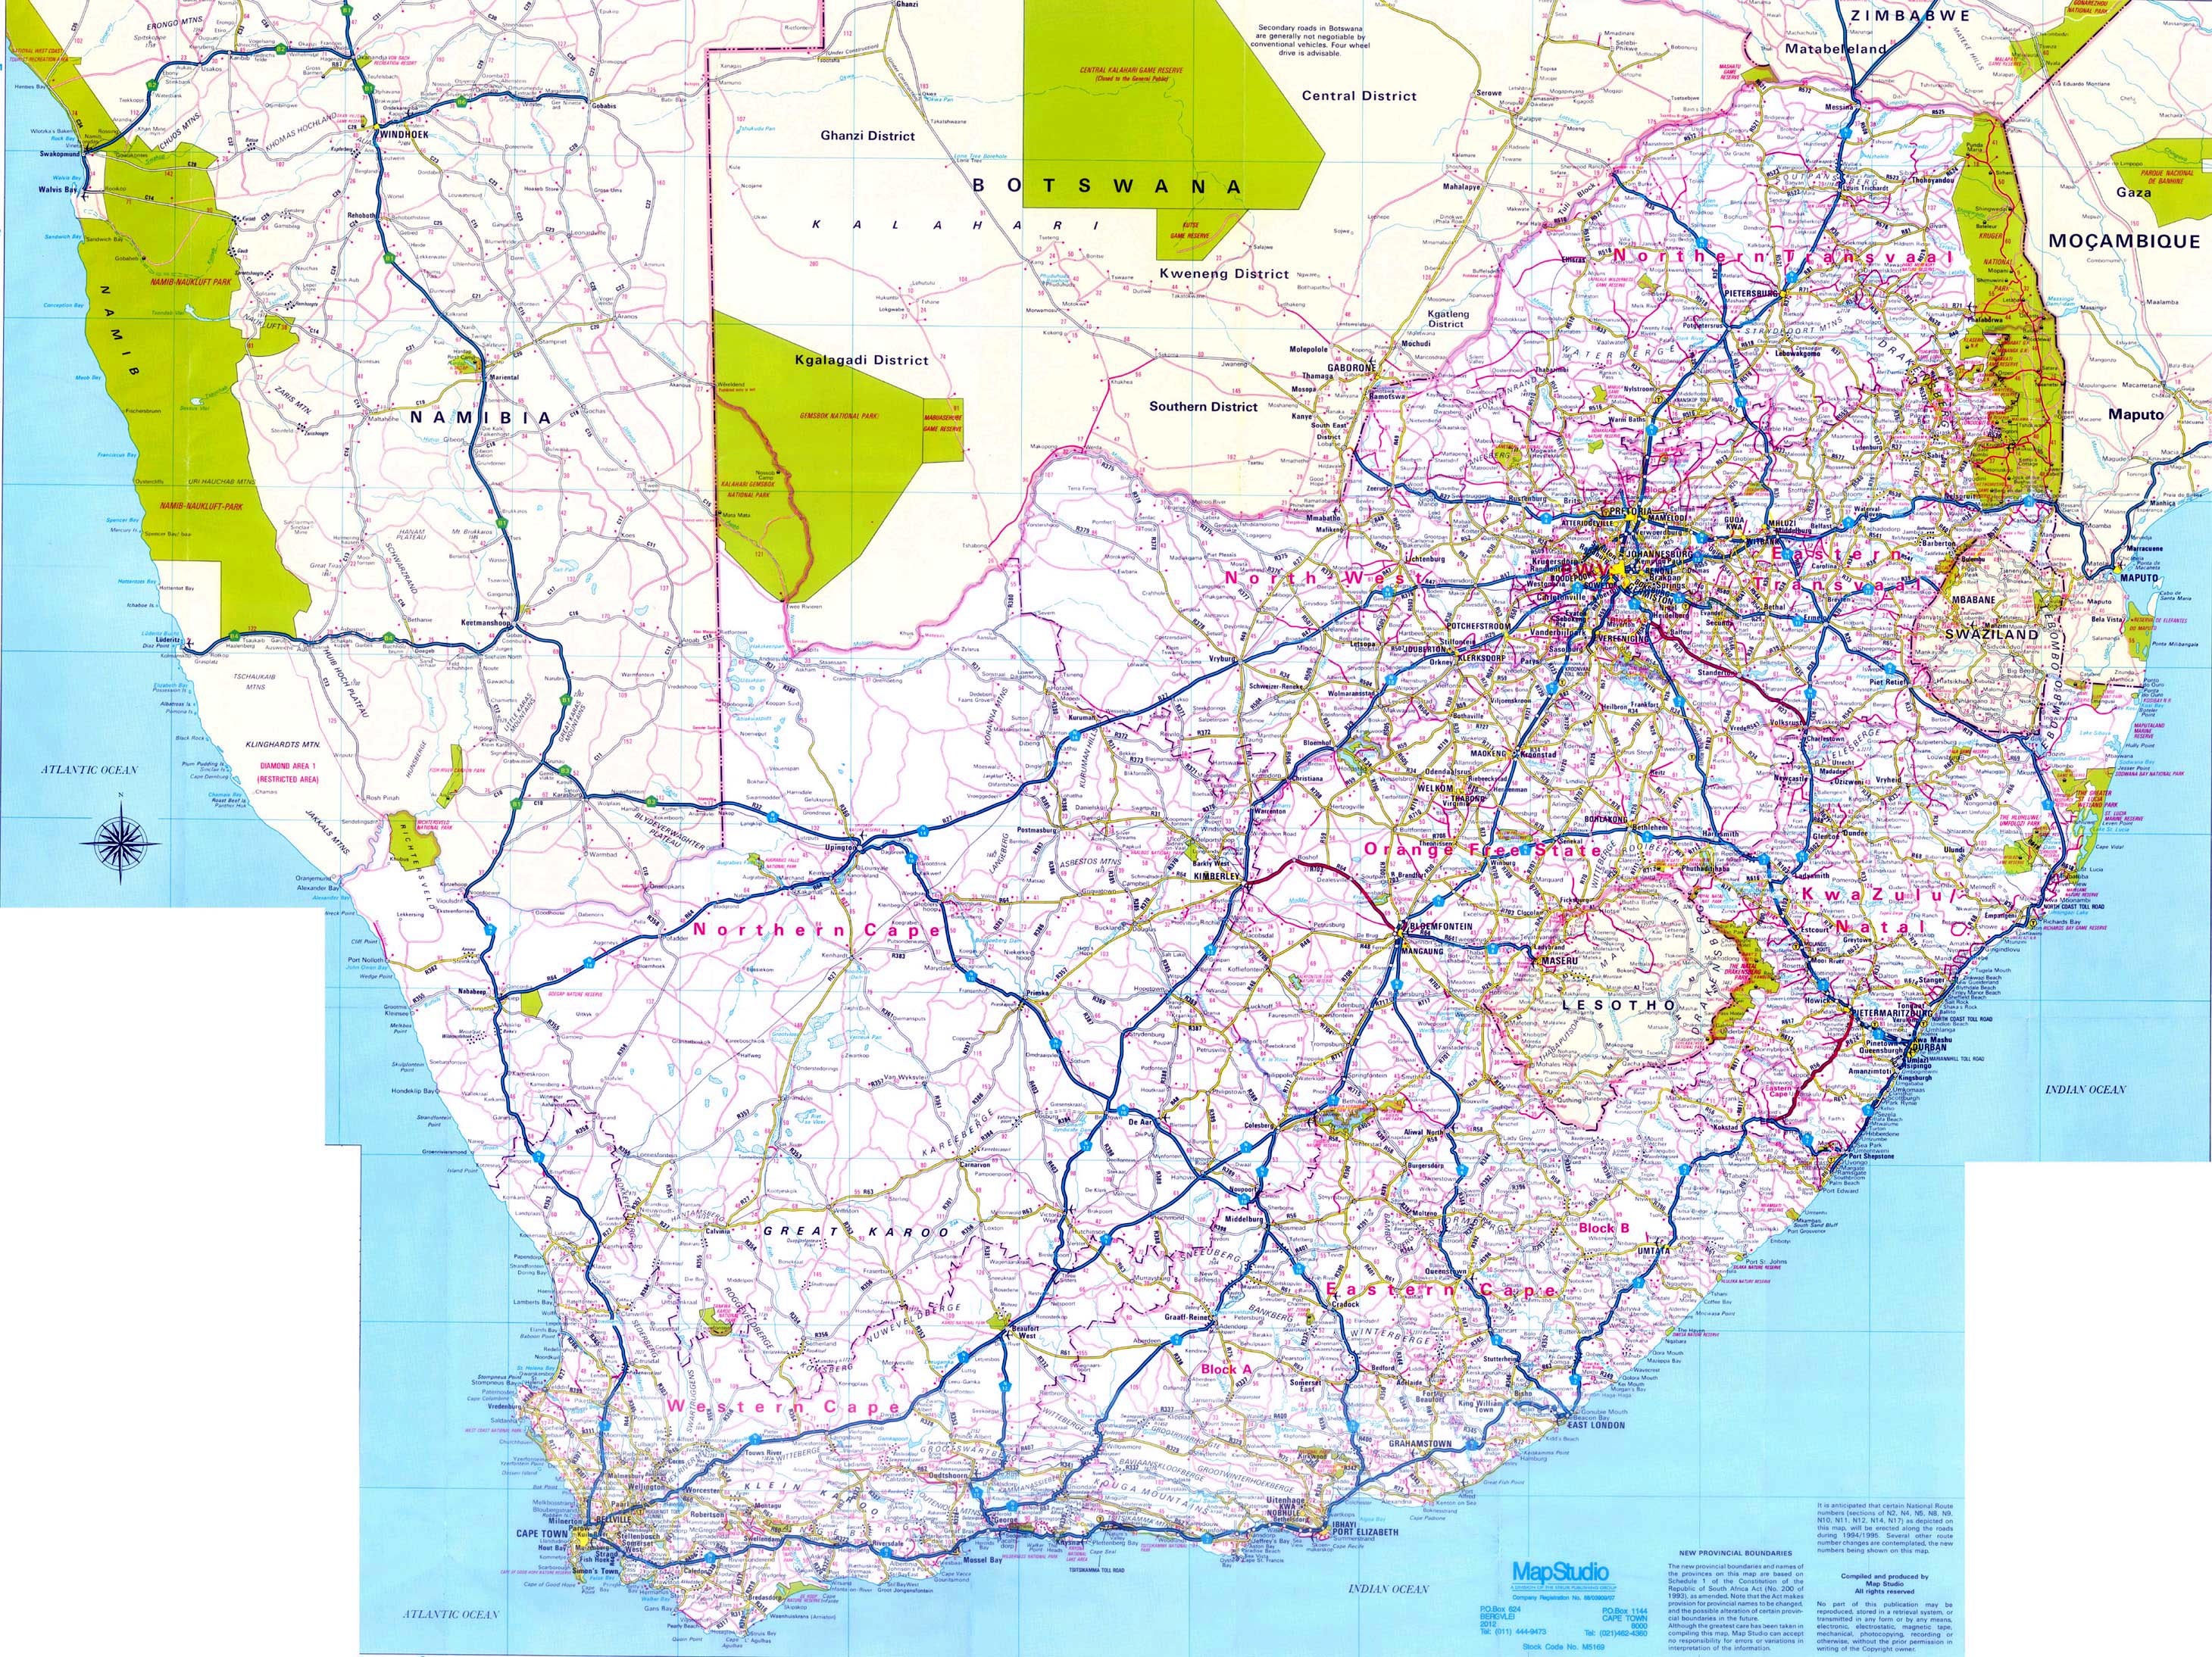 South Africa Maps | Printable Maps of South Africa for Download